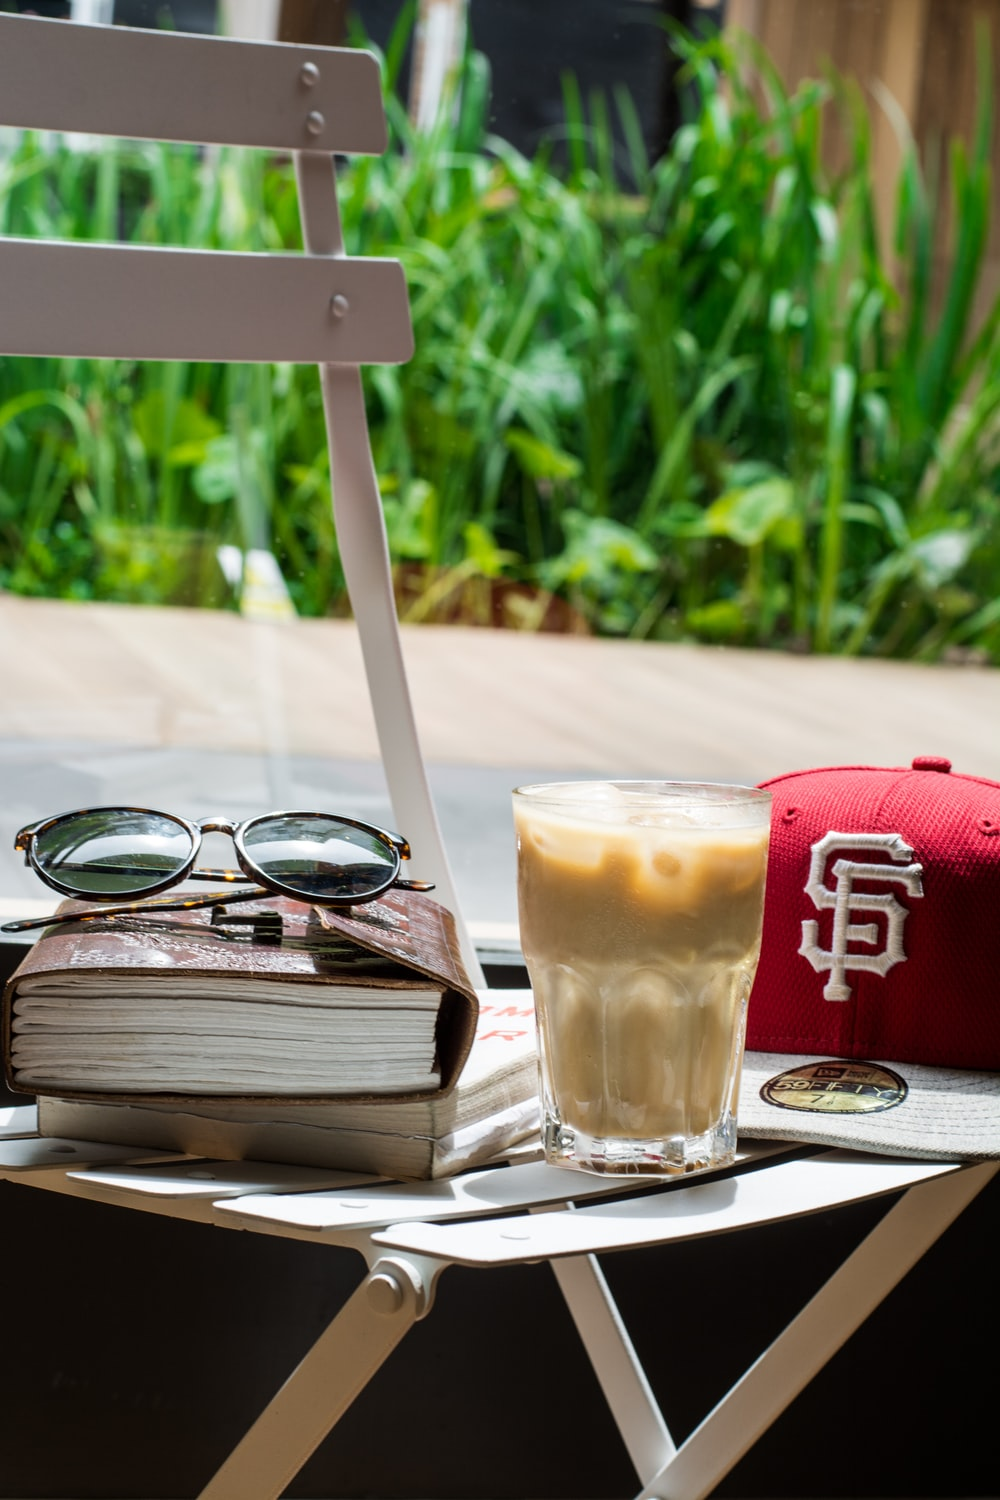 red cap, drinking glass, brown, book, and black sunglasses on top of white table